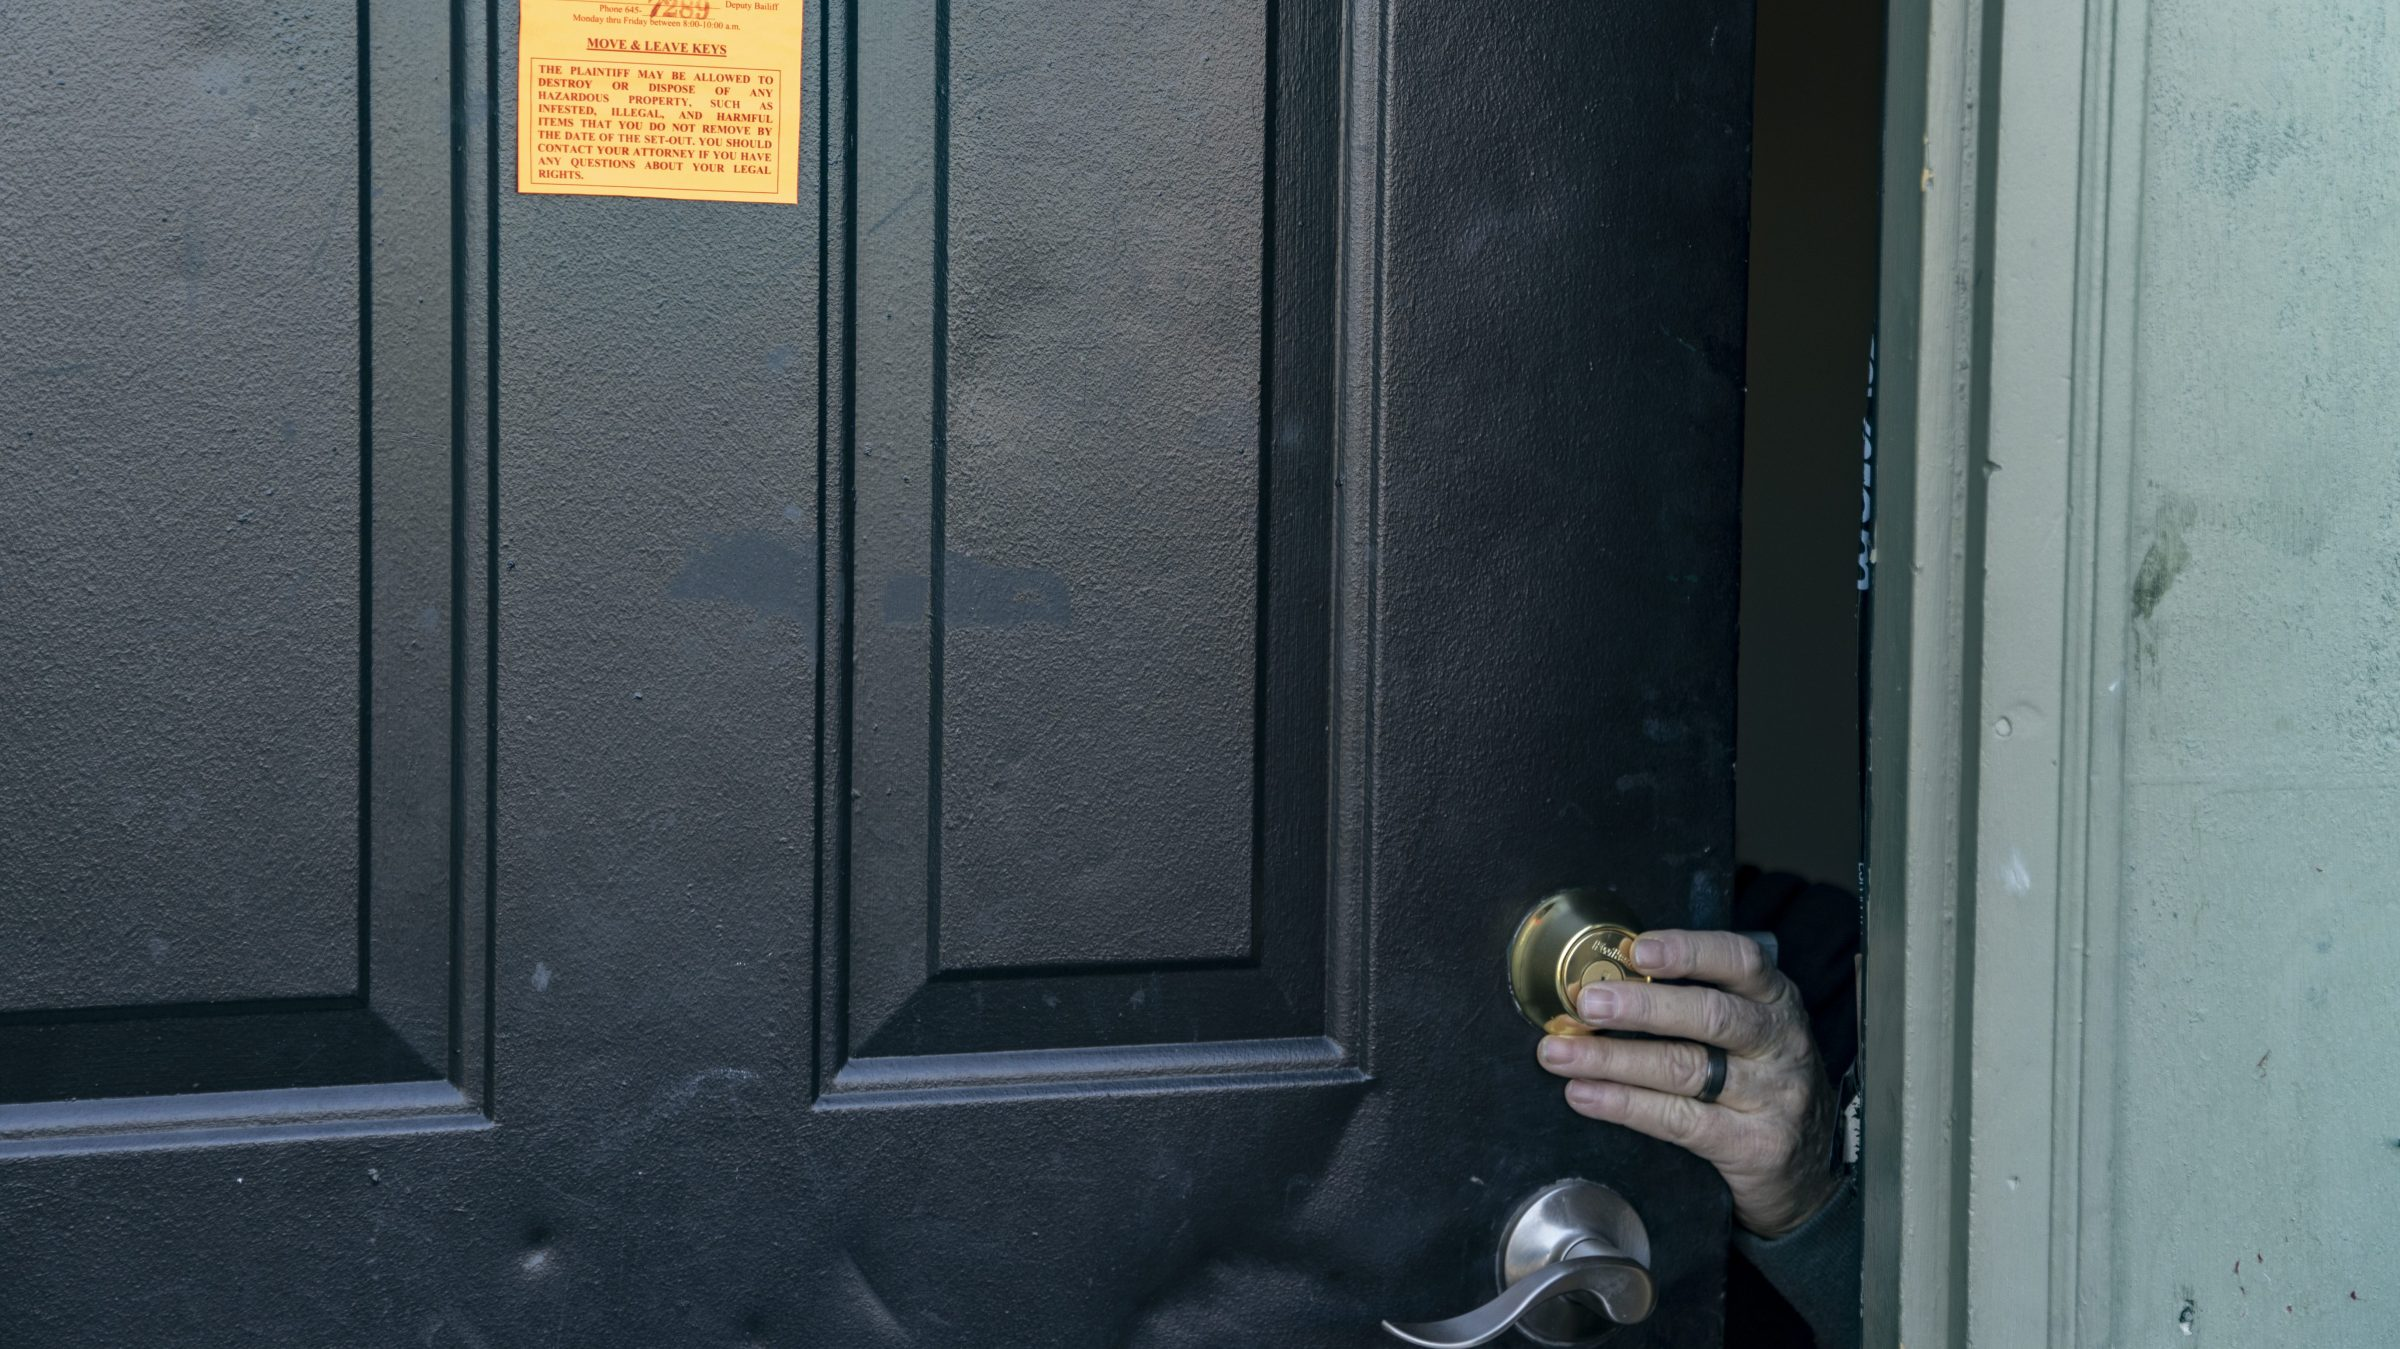 An eviction notice is posted and the lock is changed on a residence in the unincorporated community of Galloway on March 3, 2021 west of Columbus, Ohio.